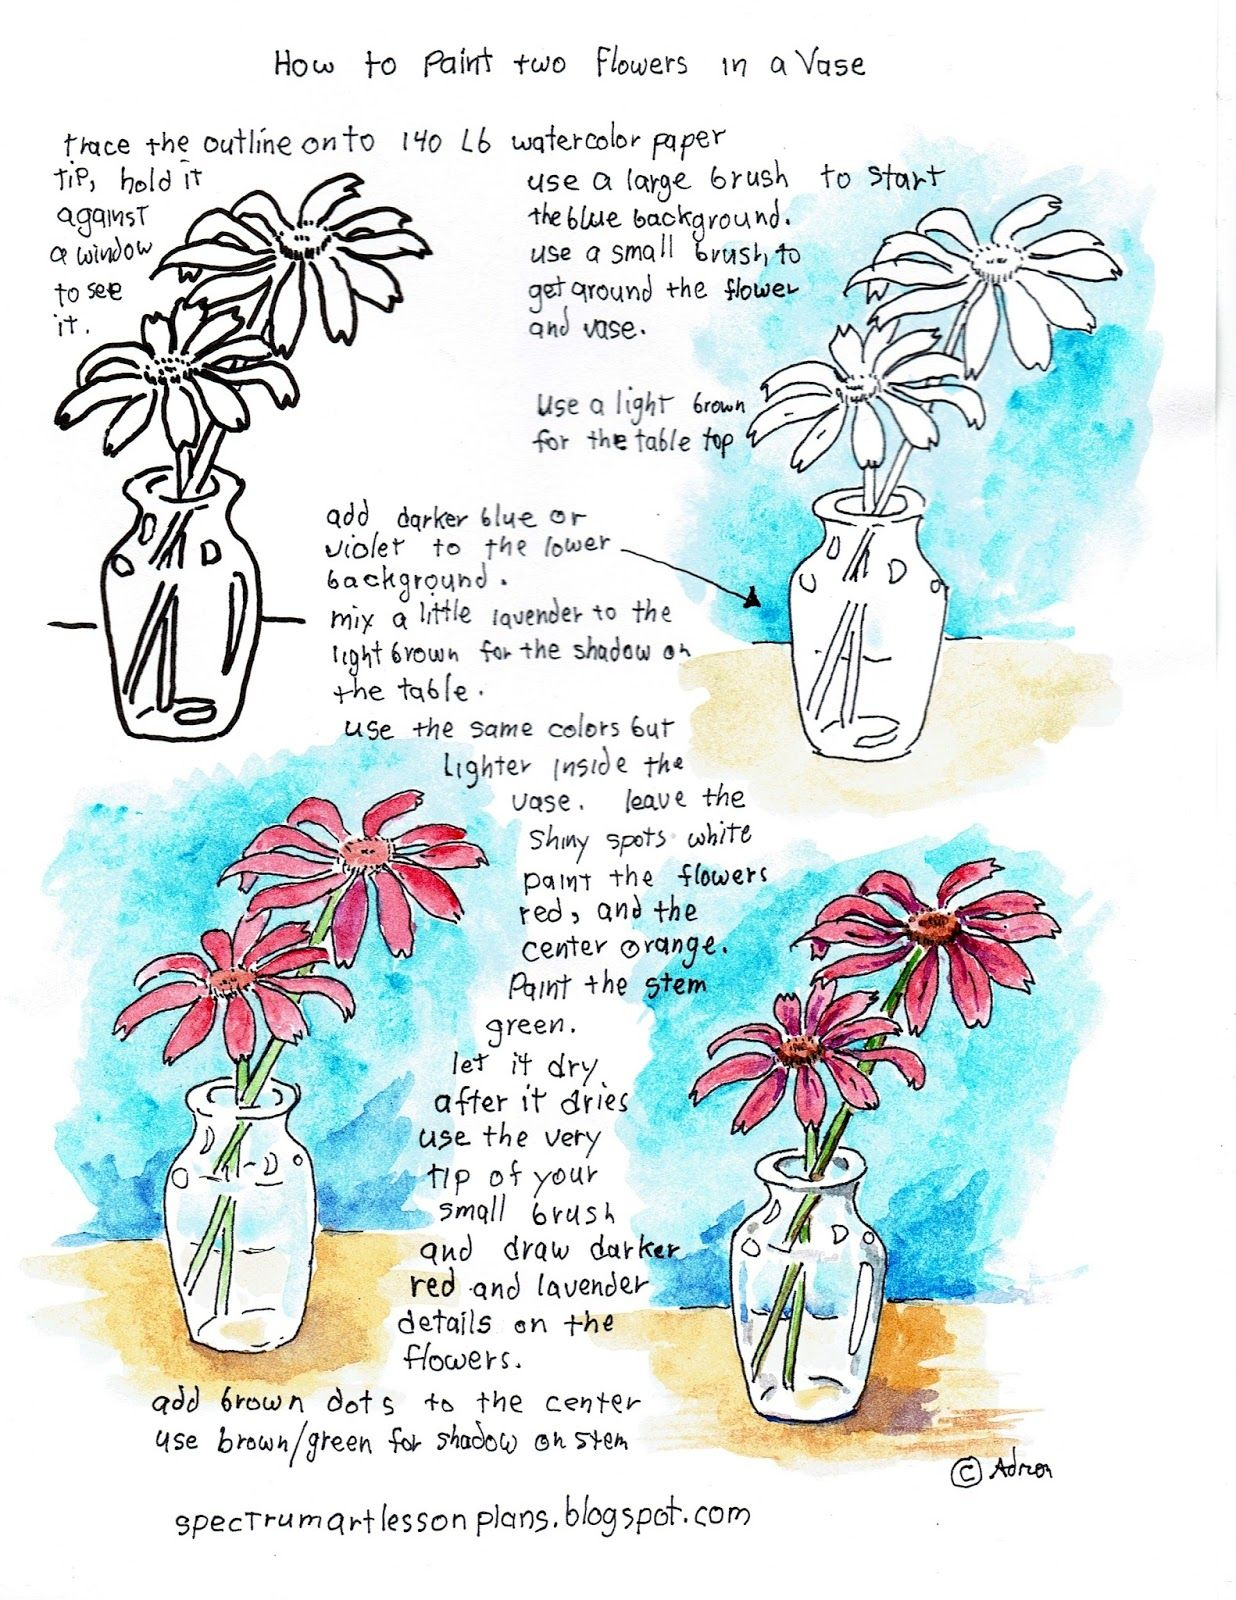 Adron S Art Lesson Plans Printable Painting Worksheet How To Paint Two Flowers In A Vase